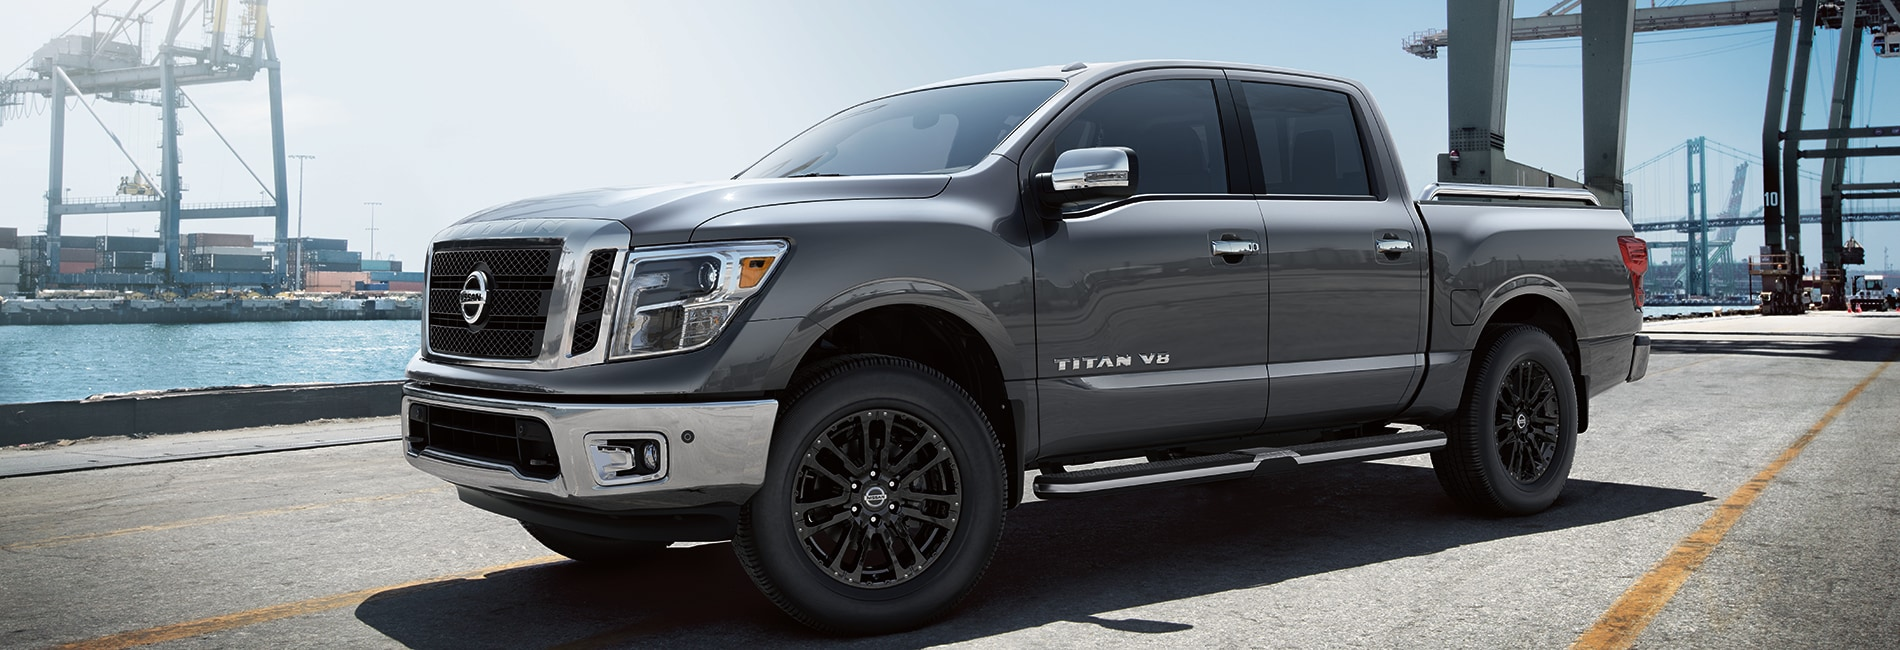 Nissan Titan Exterior Vehicle Features